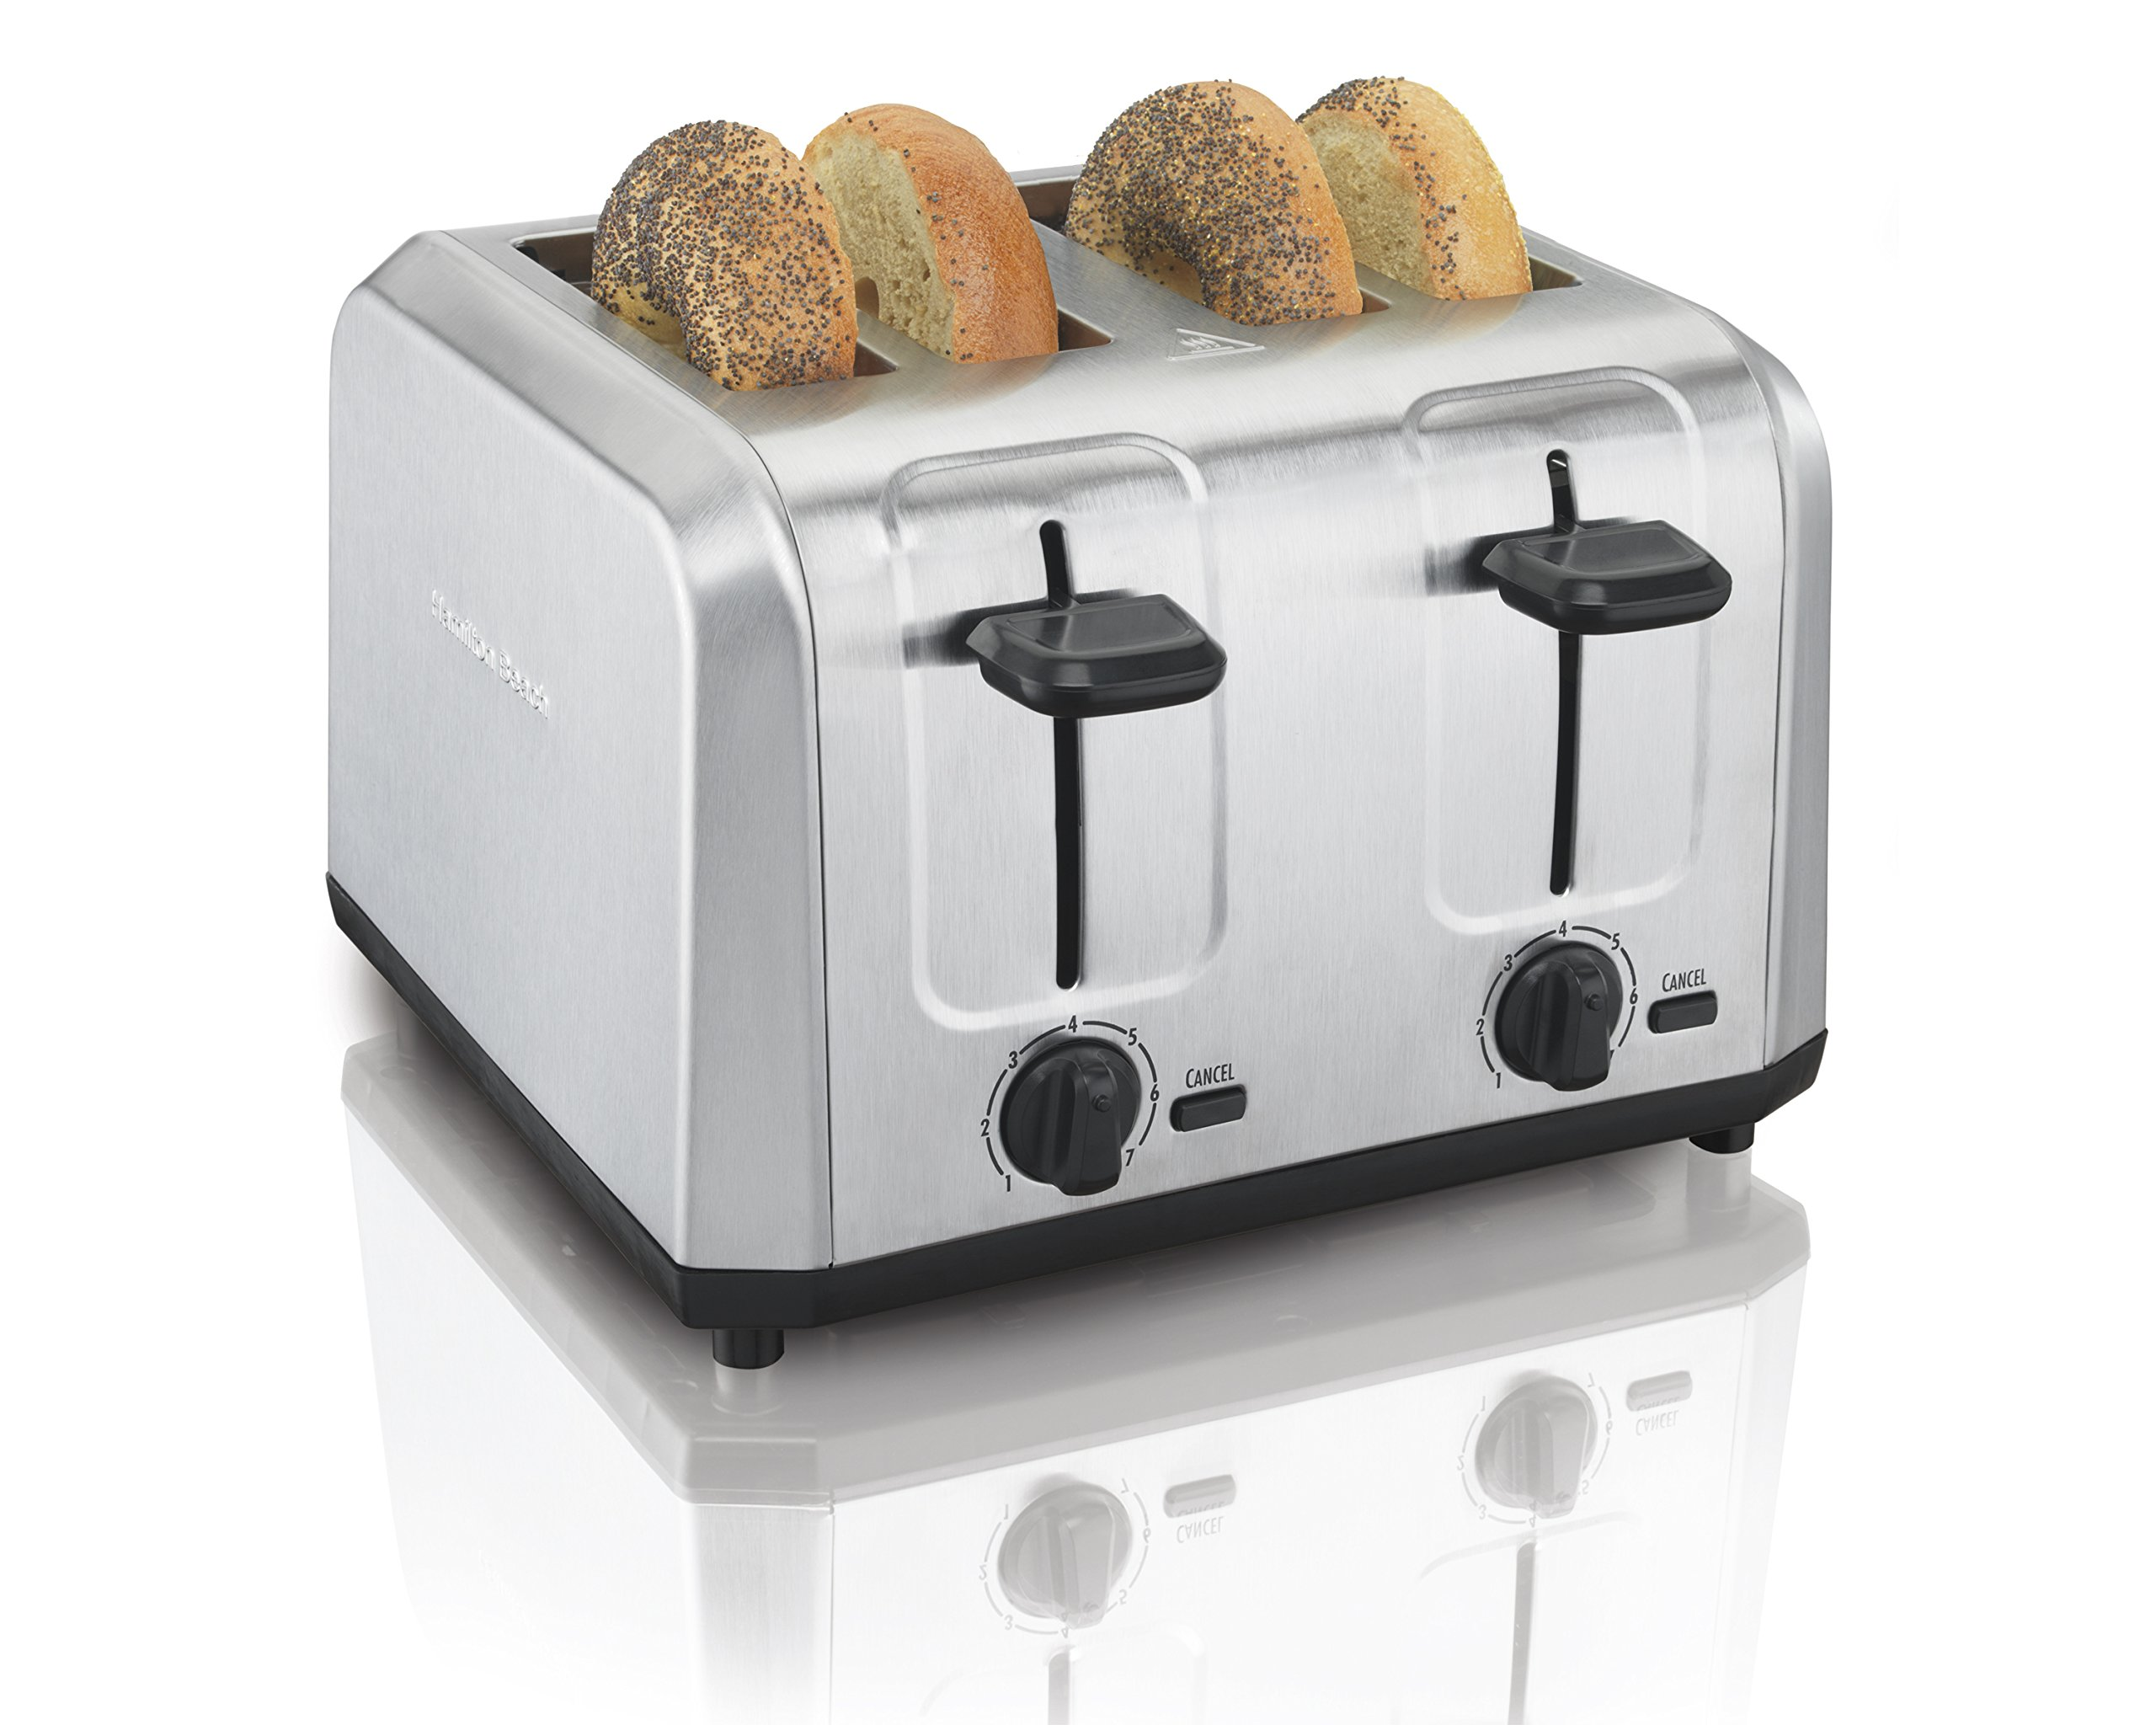 Hamilton Beach Brushed Stainless Steel 4-Slice Extra-Wide Toaster with Shade Selector, Toast Boost, Slide-Out Crumb Tray, Auto-Shutoff and Cancel Button (24910) by Hamilton Beach